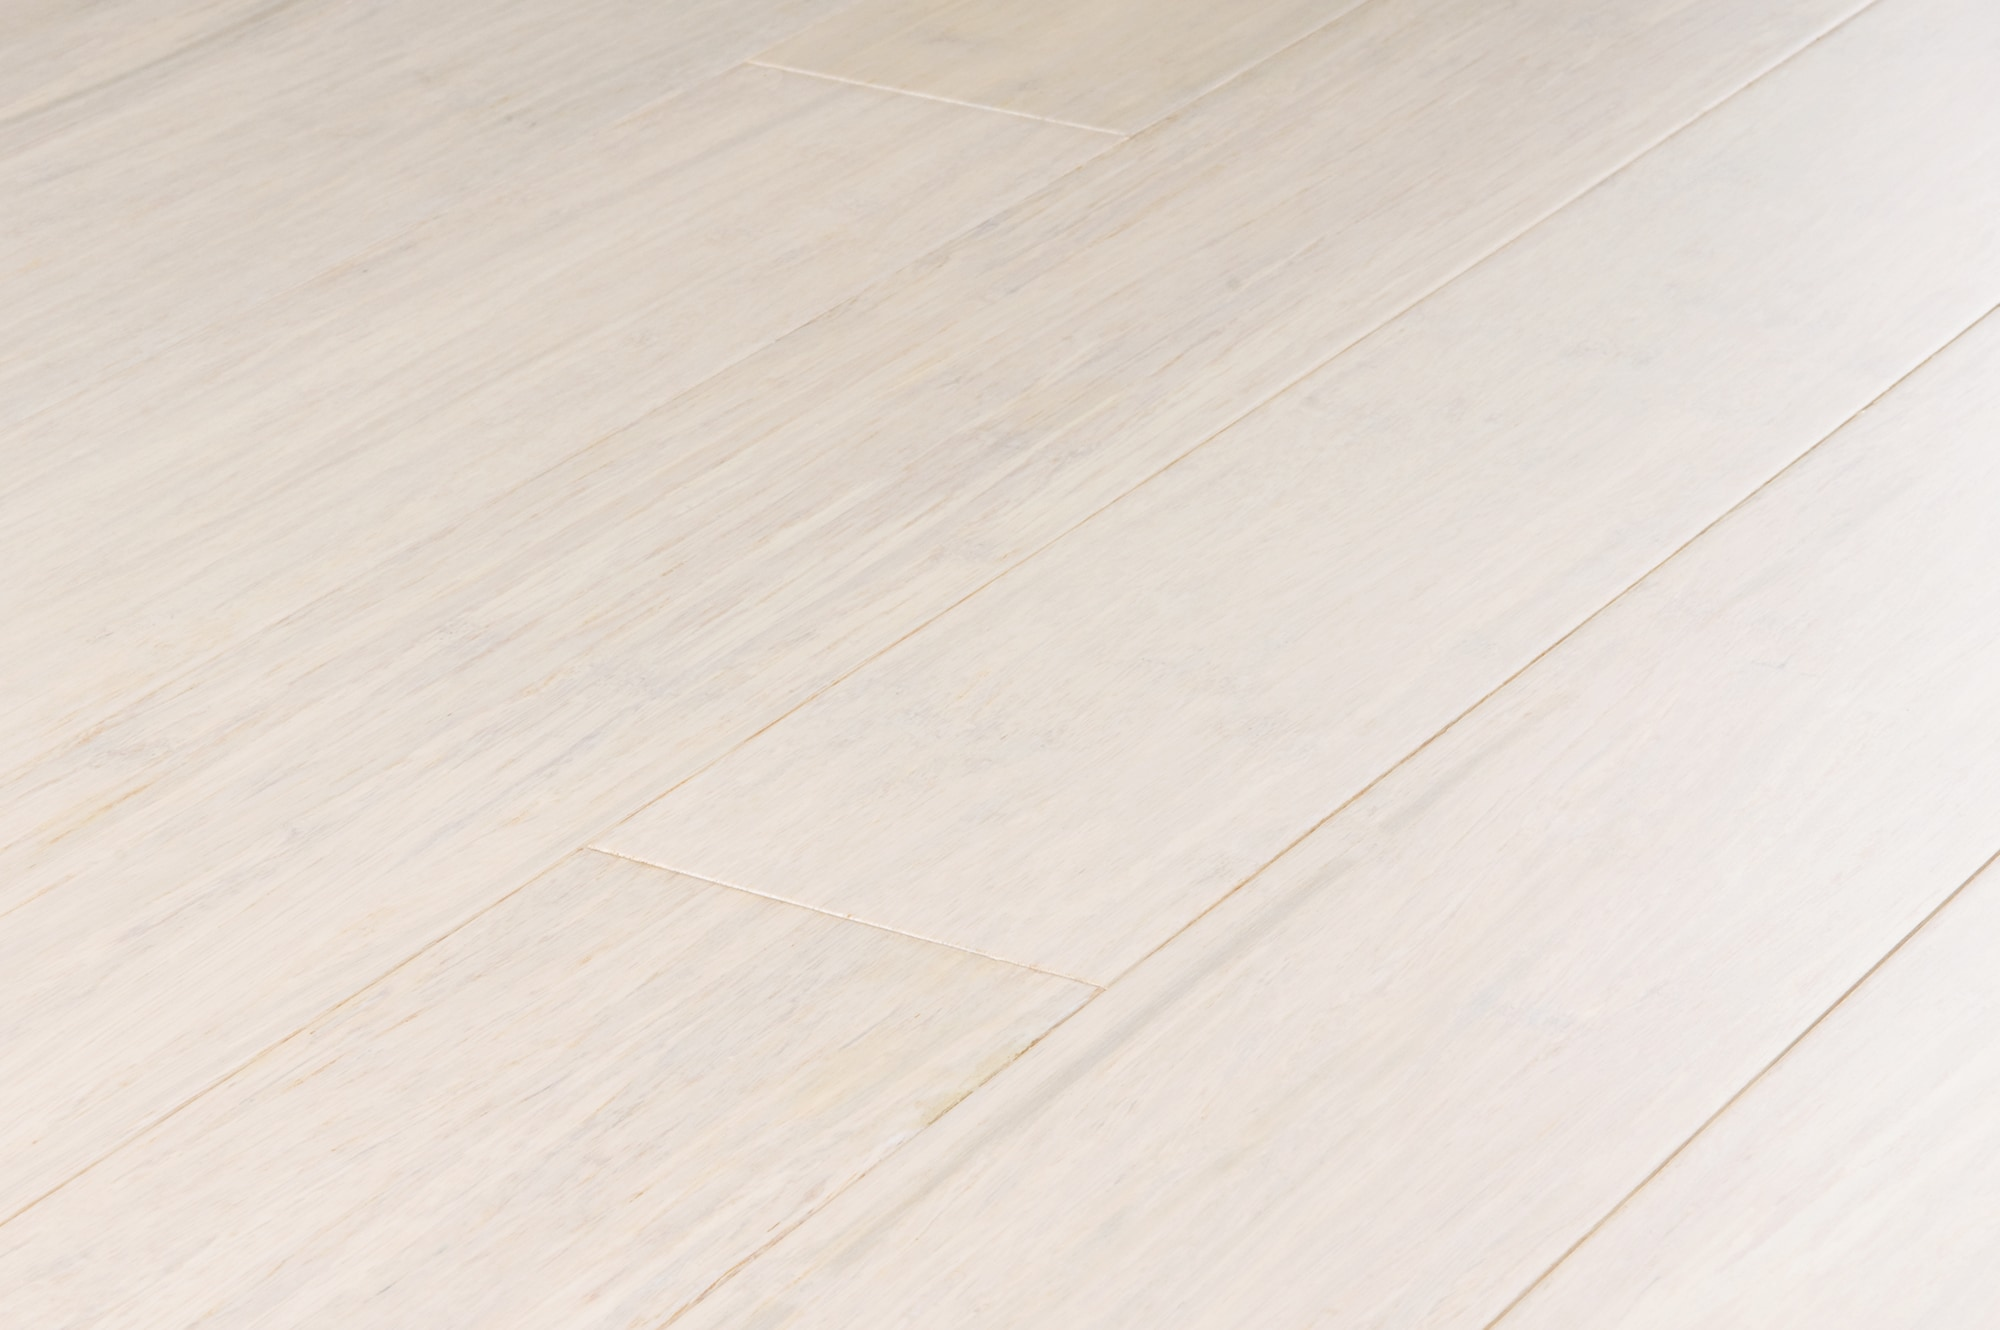 Yanchi Stained Lock Solid Strand Woven Bamboo Flooring White